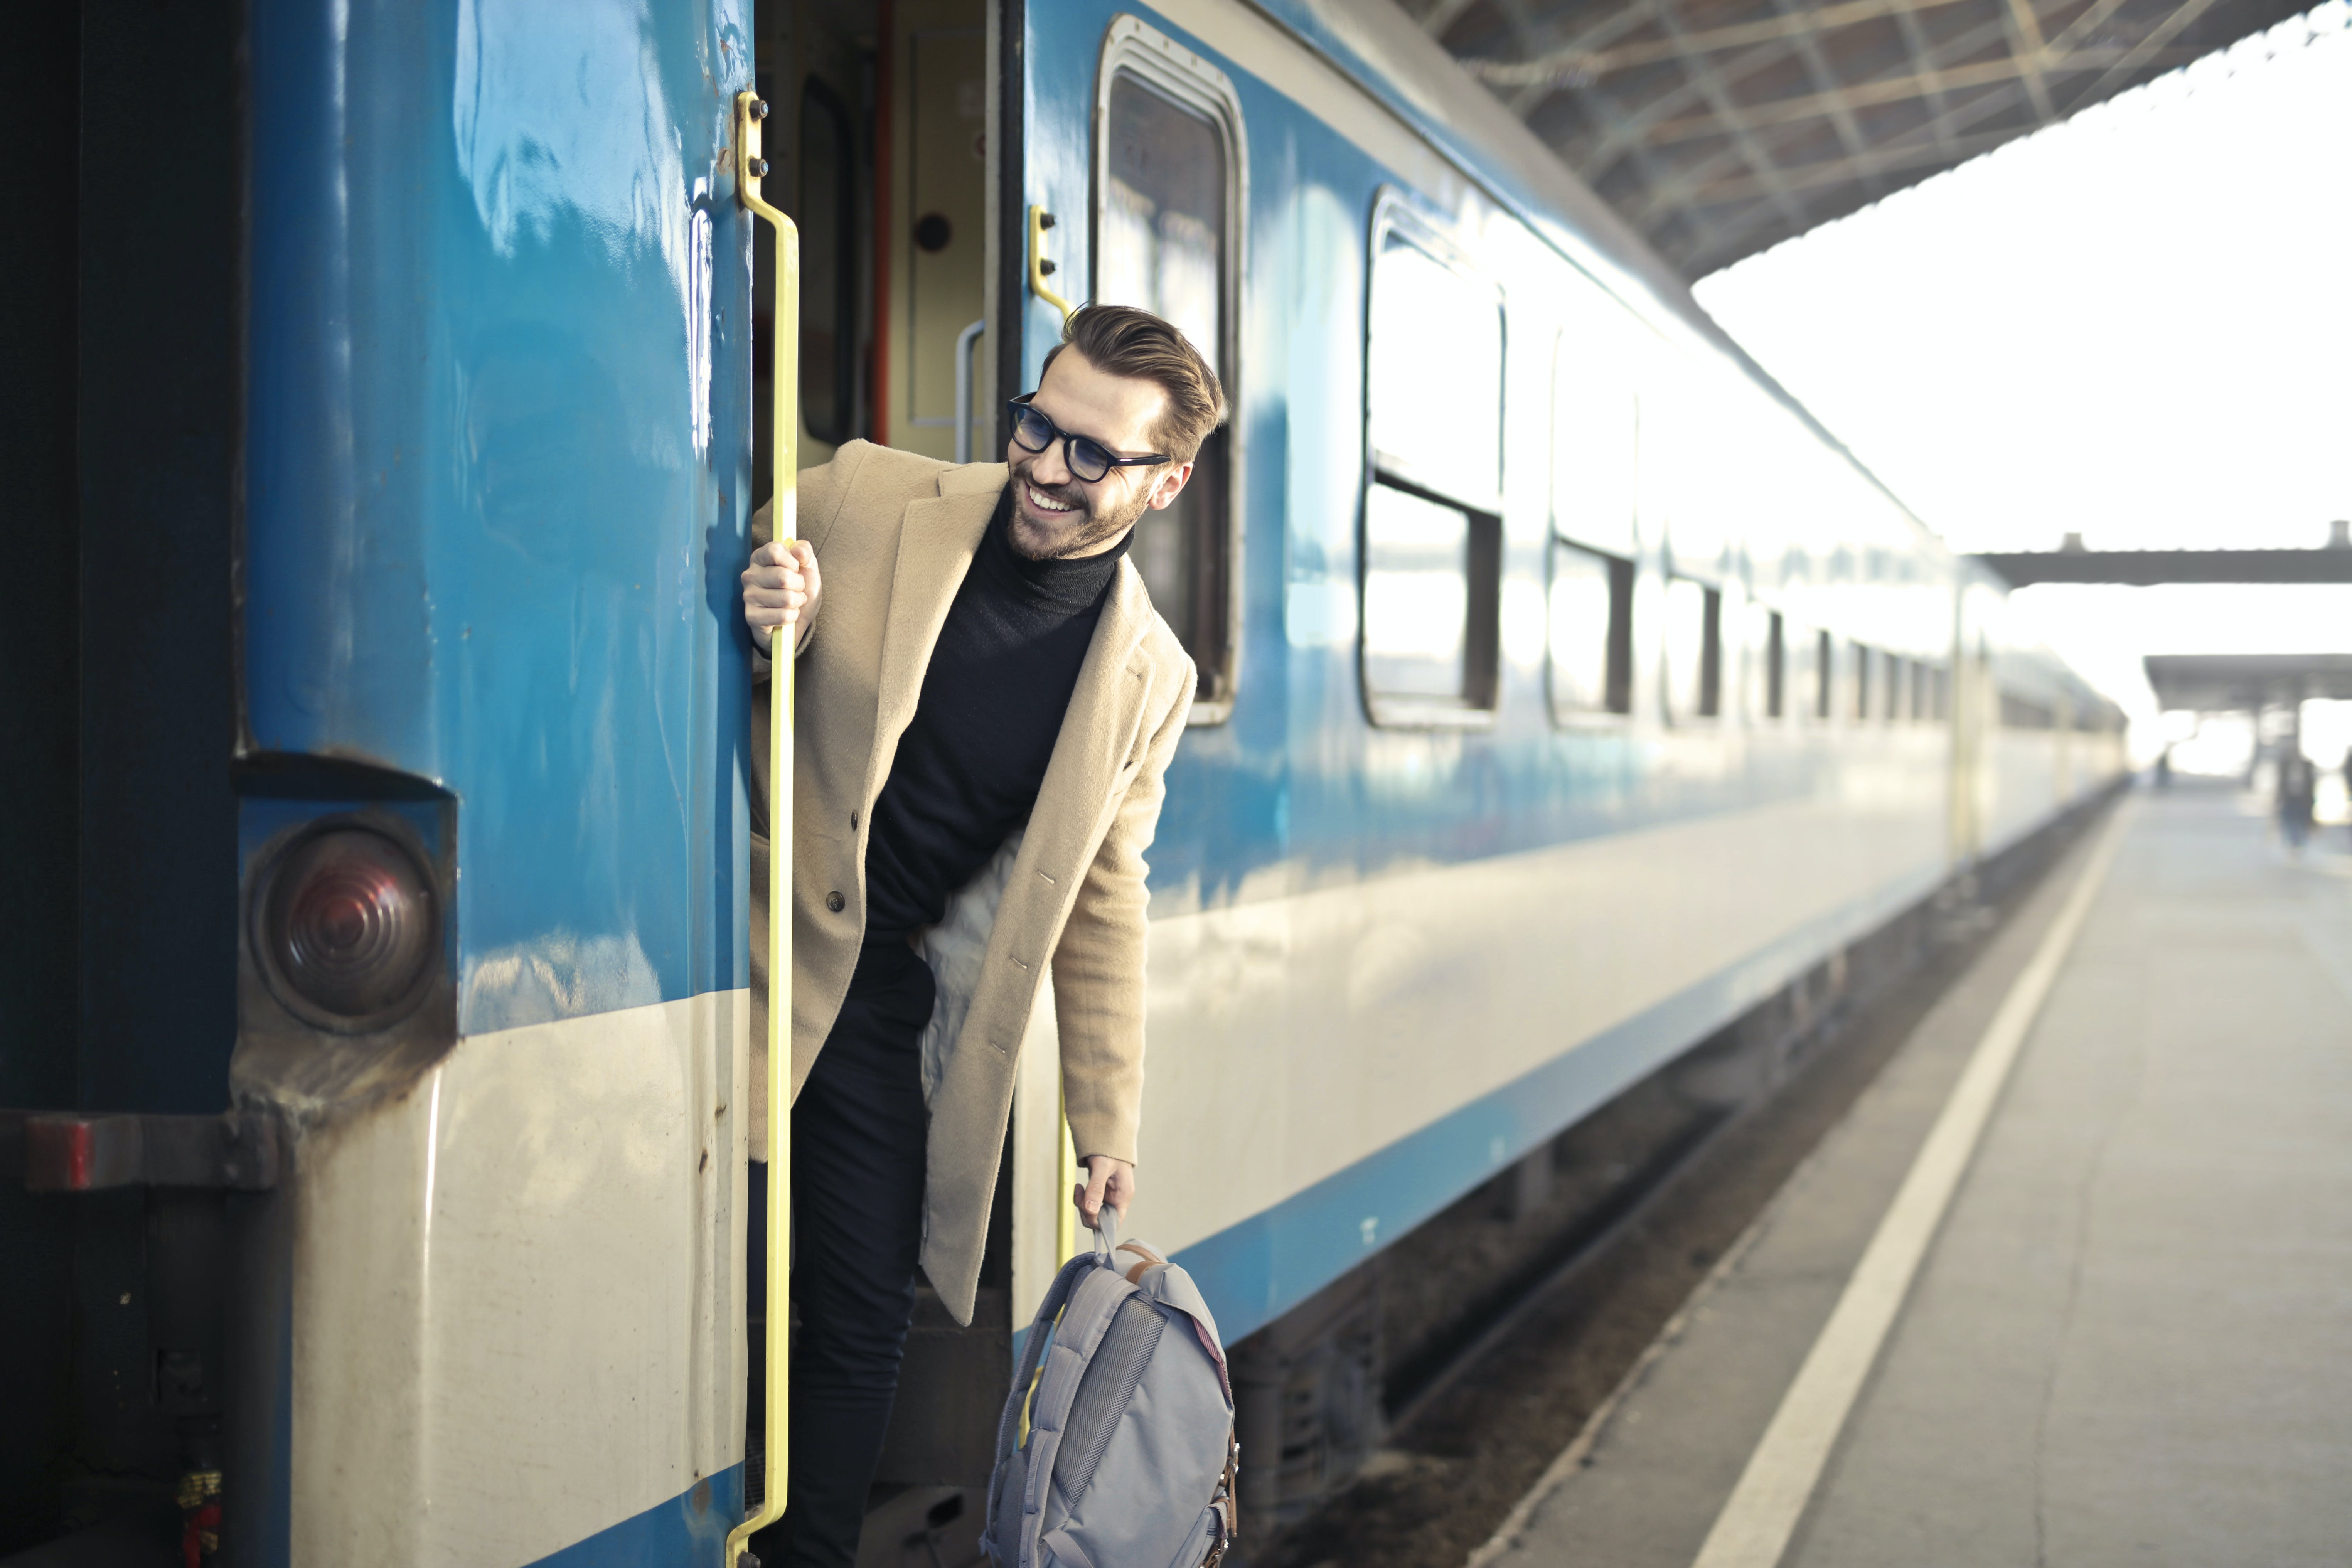 Man Wearing Beige Overcoat Inside Train